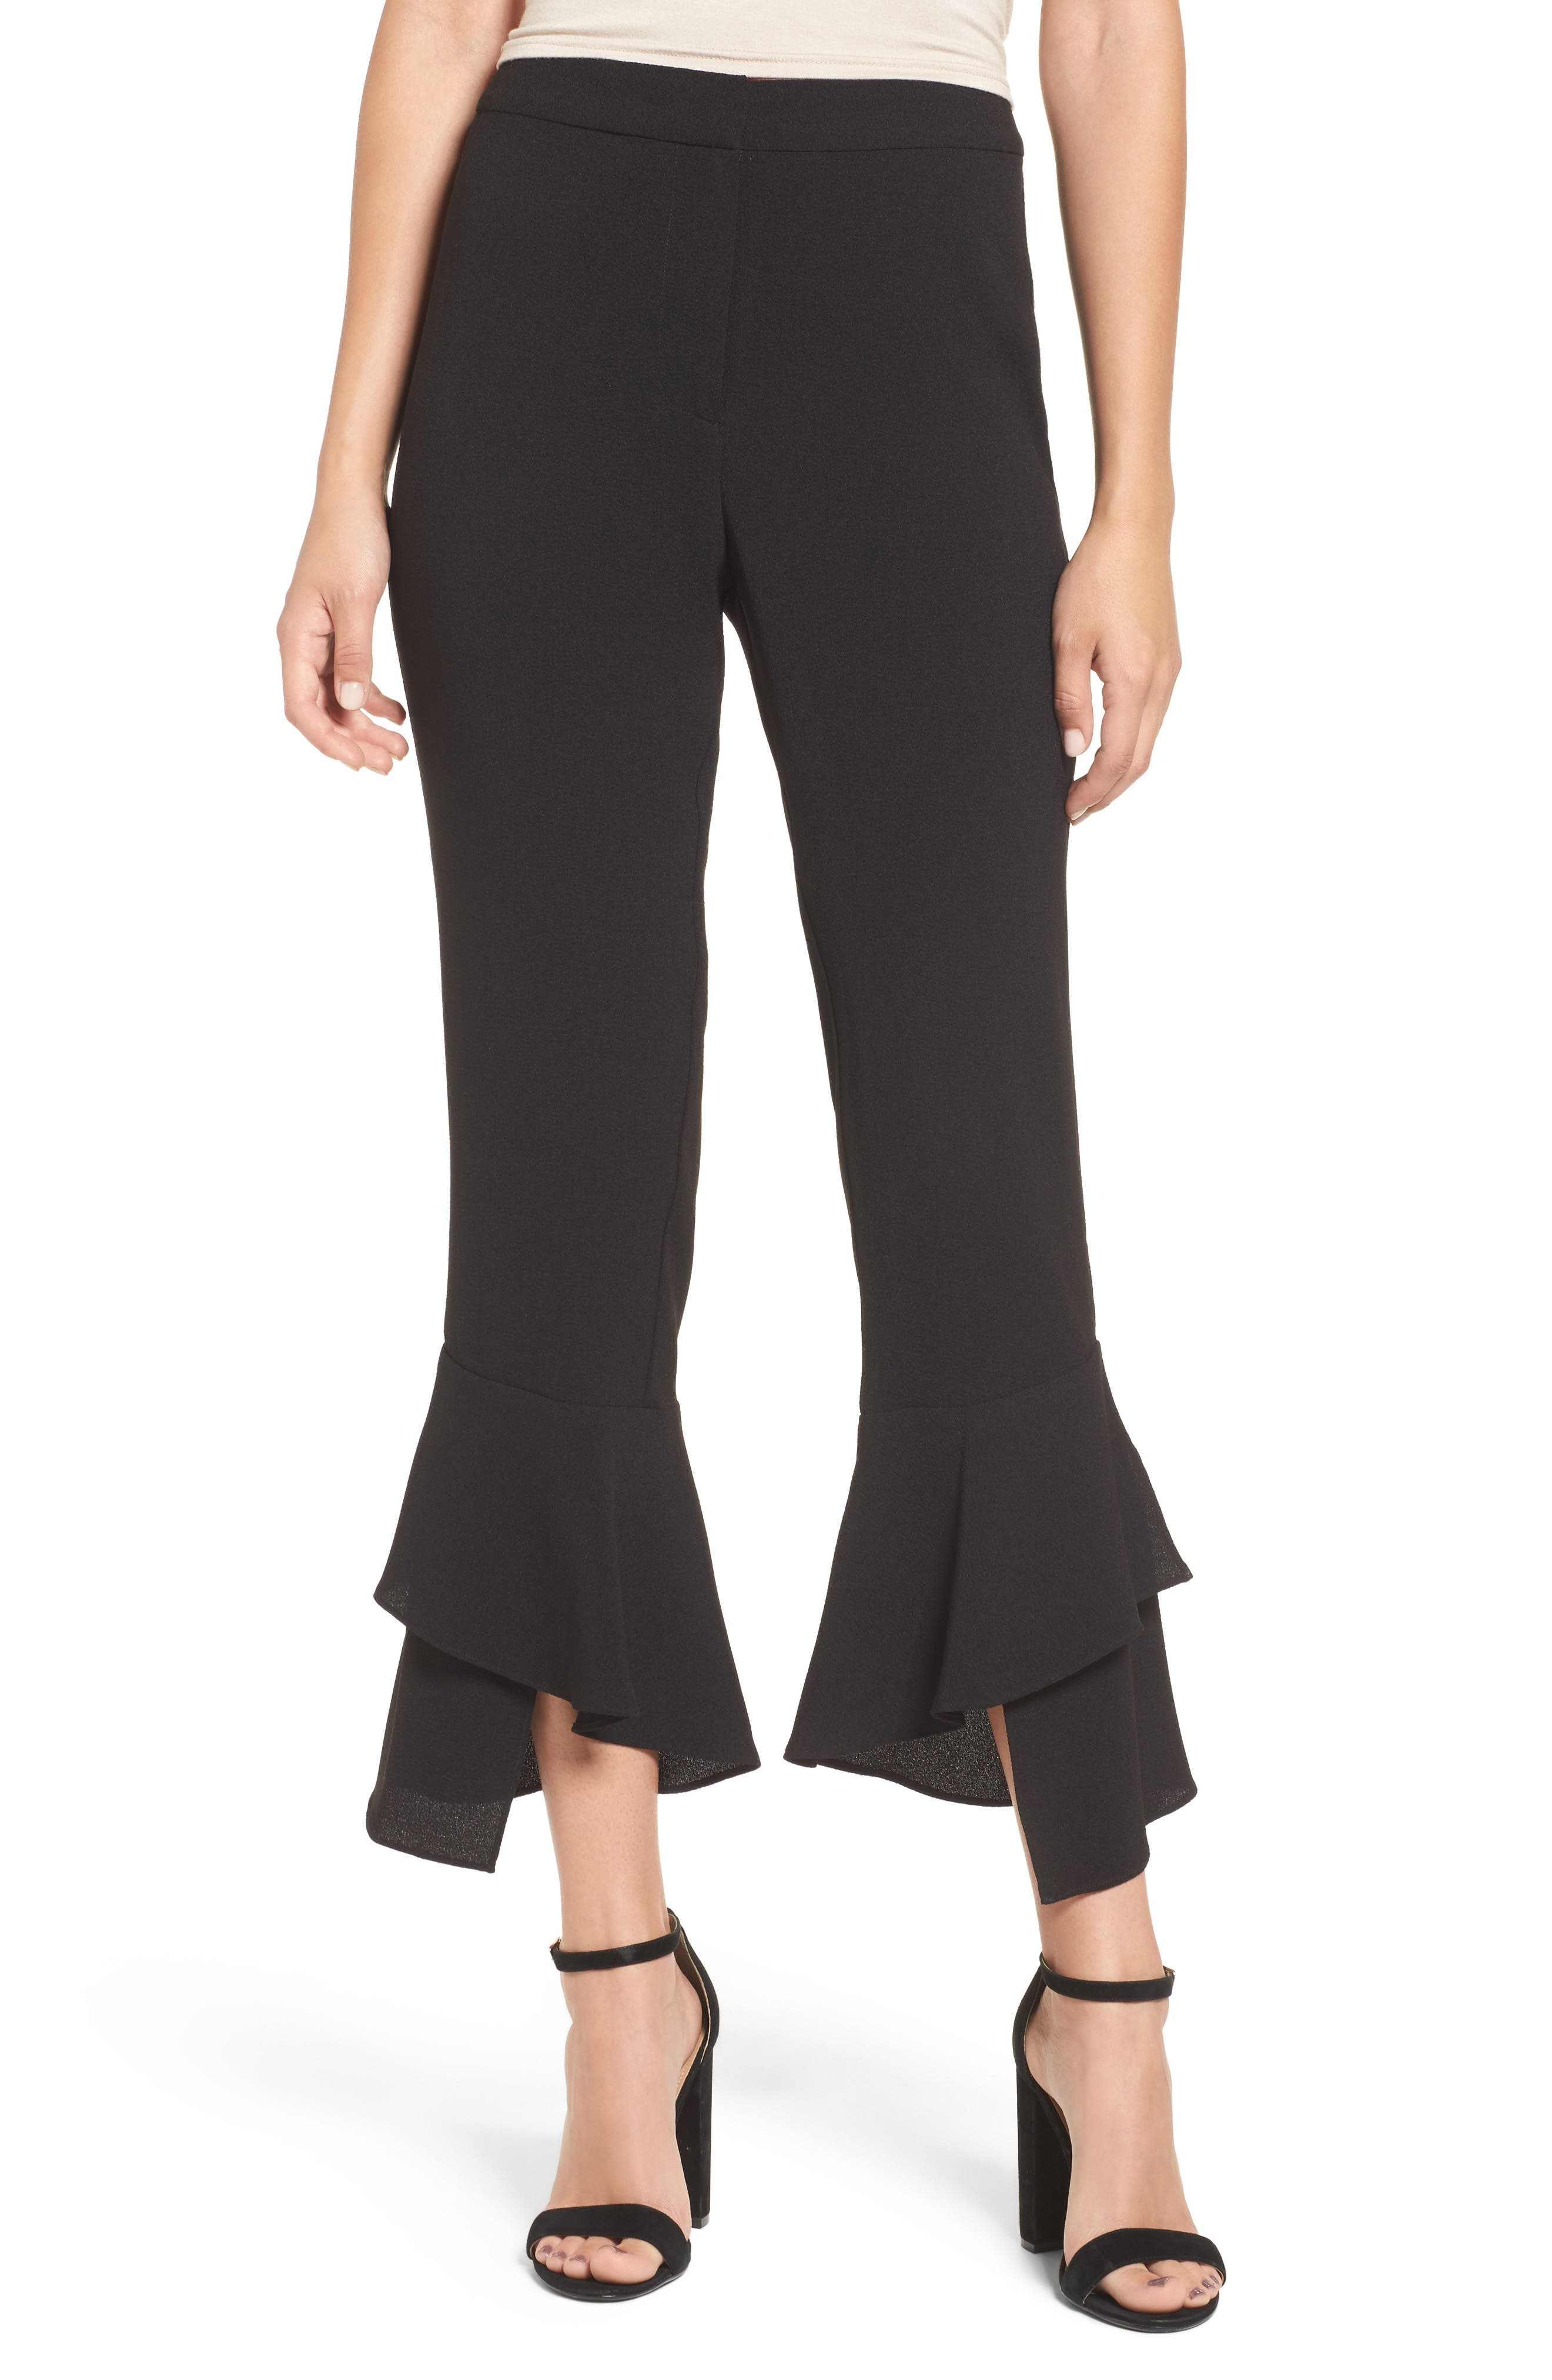 Gail Ruffle Hem Crop Pants,                             Main thumbnail 1, color,                             001